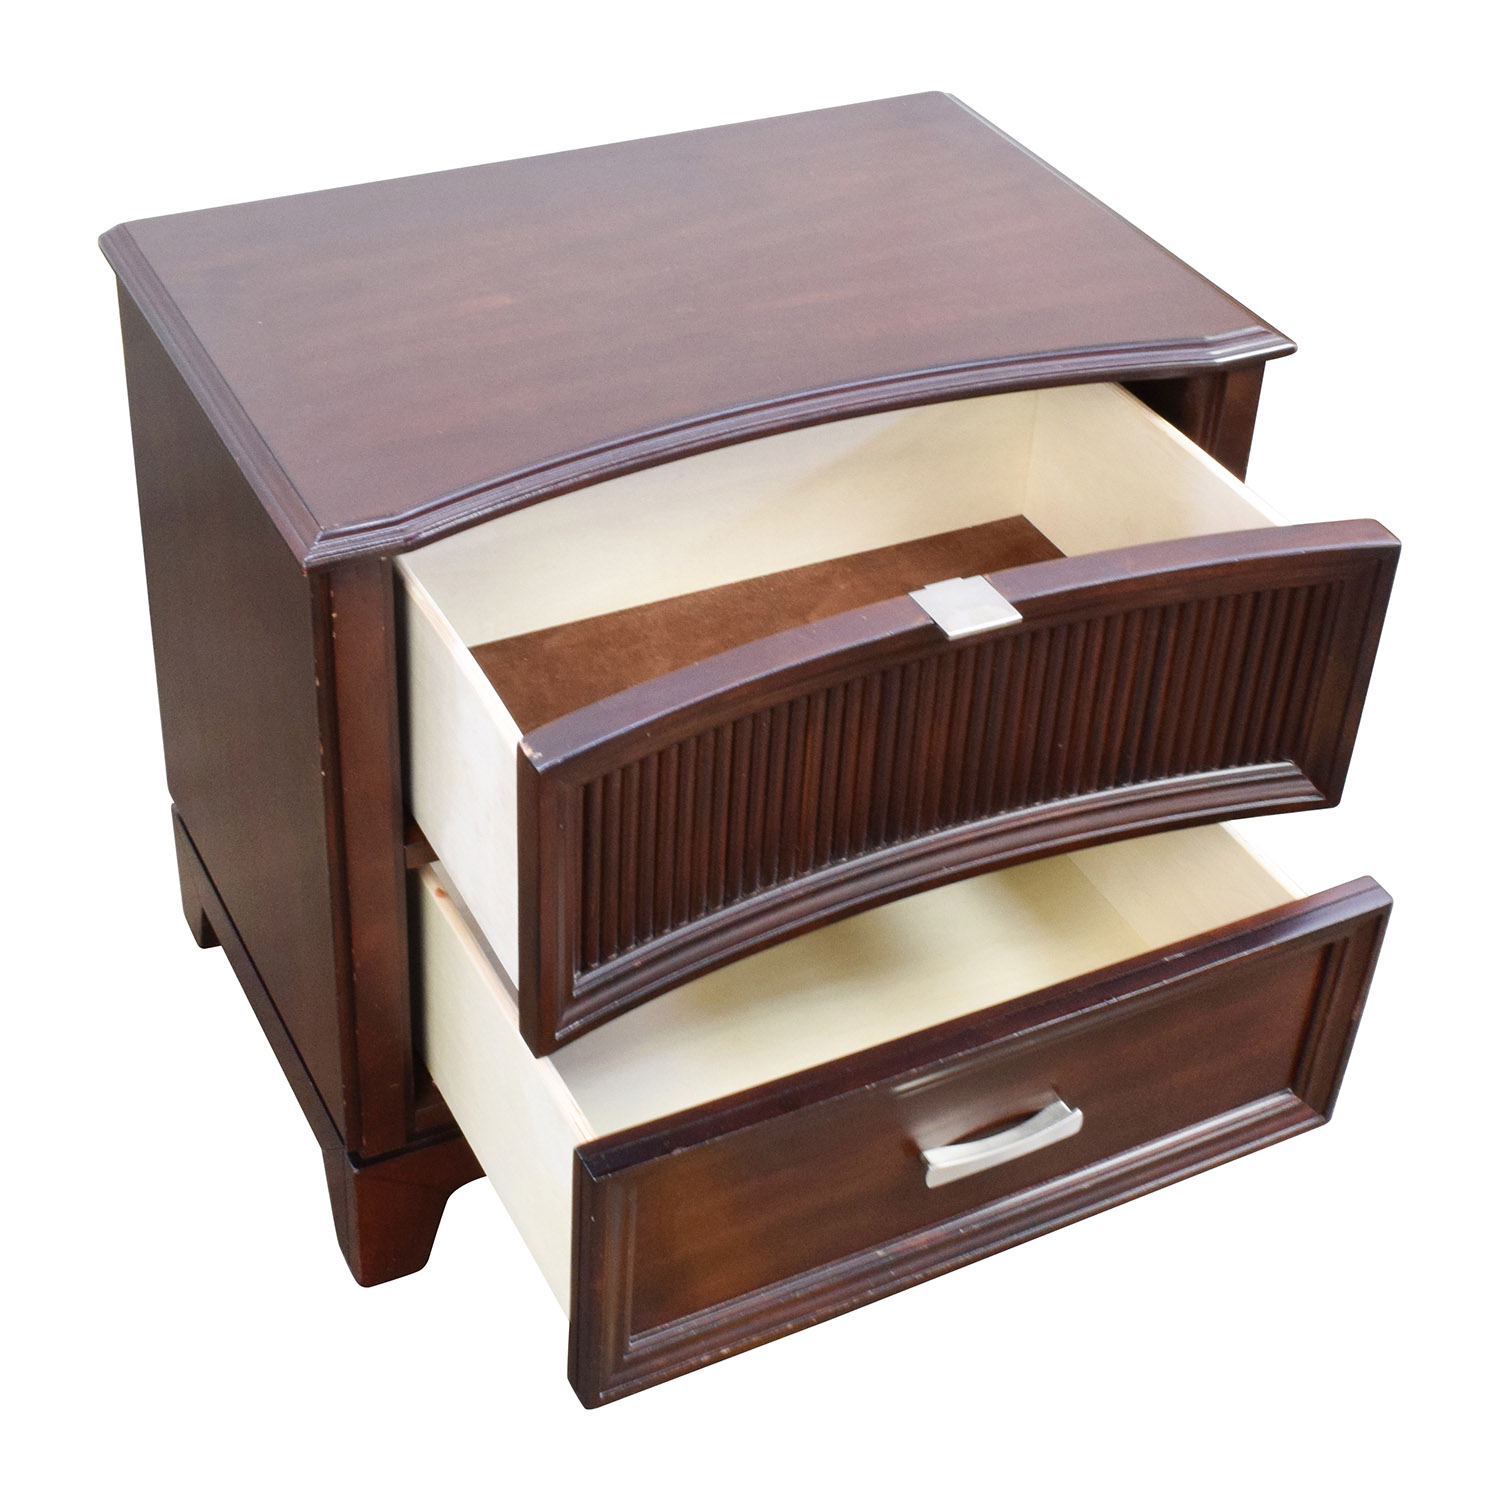 79 off bob 39 s furniture bob 39 s furniture dark brown wood for Dark wood furniture